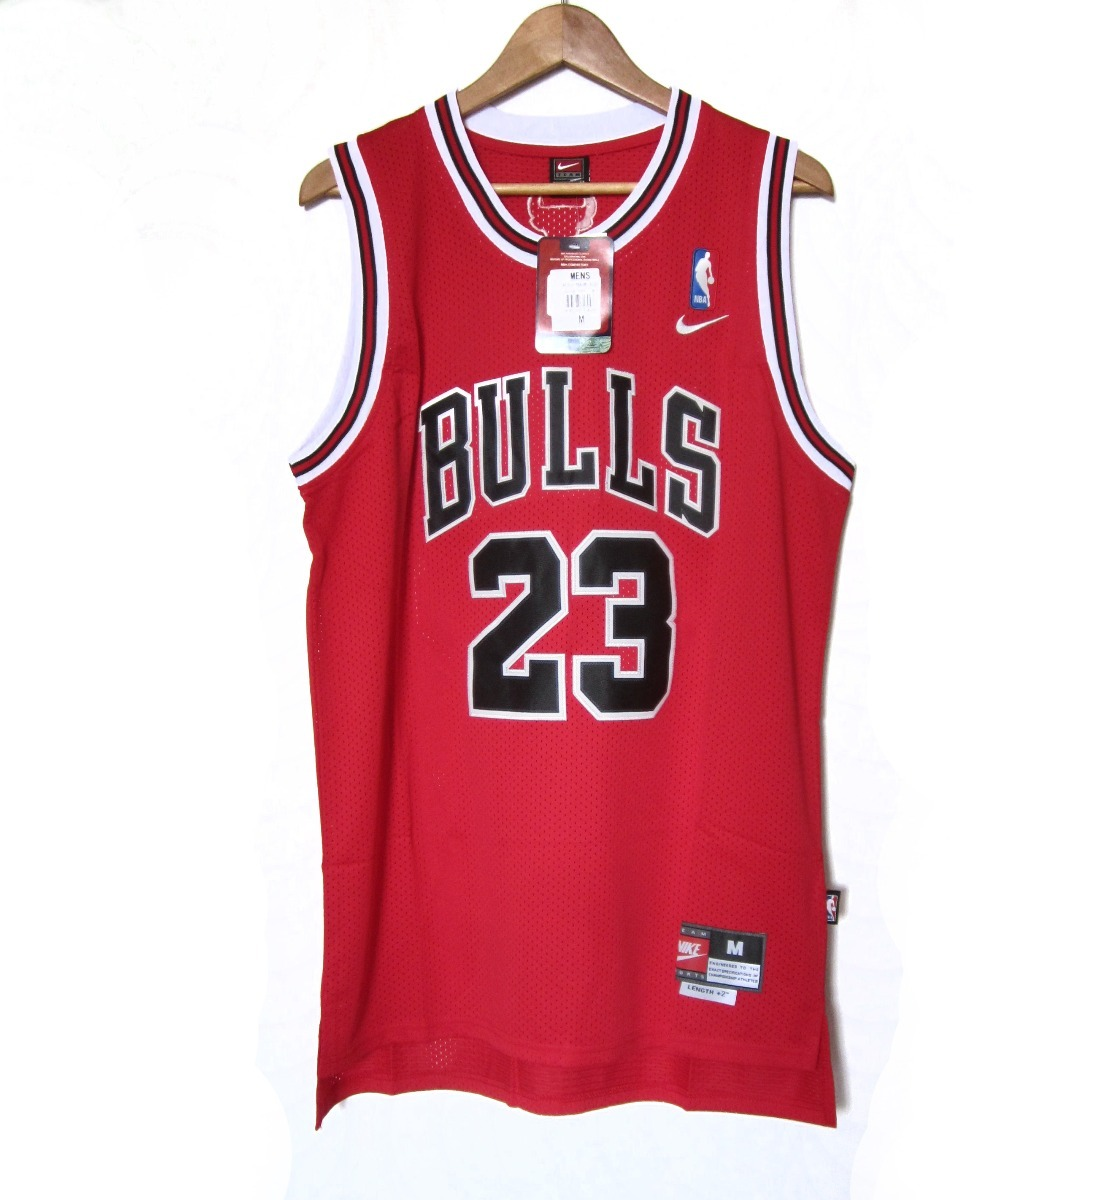 ca92de219 camisa nba michael jordan  23 chicago bulls retro regata. Carregando zoom.